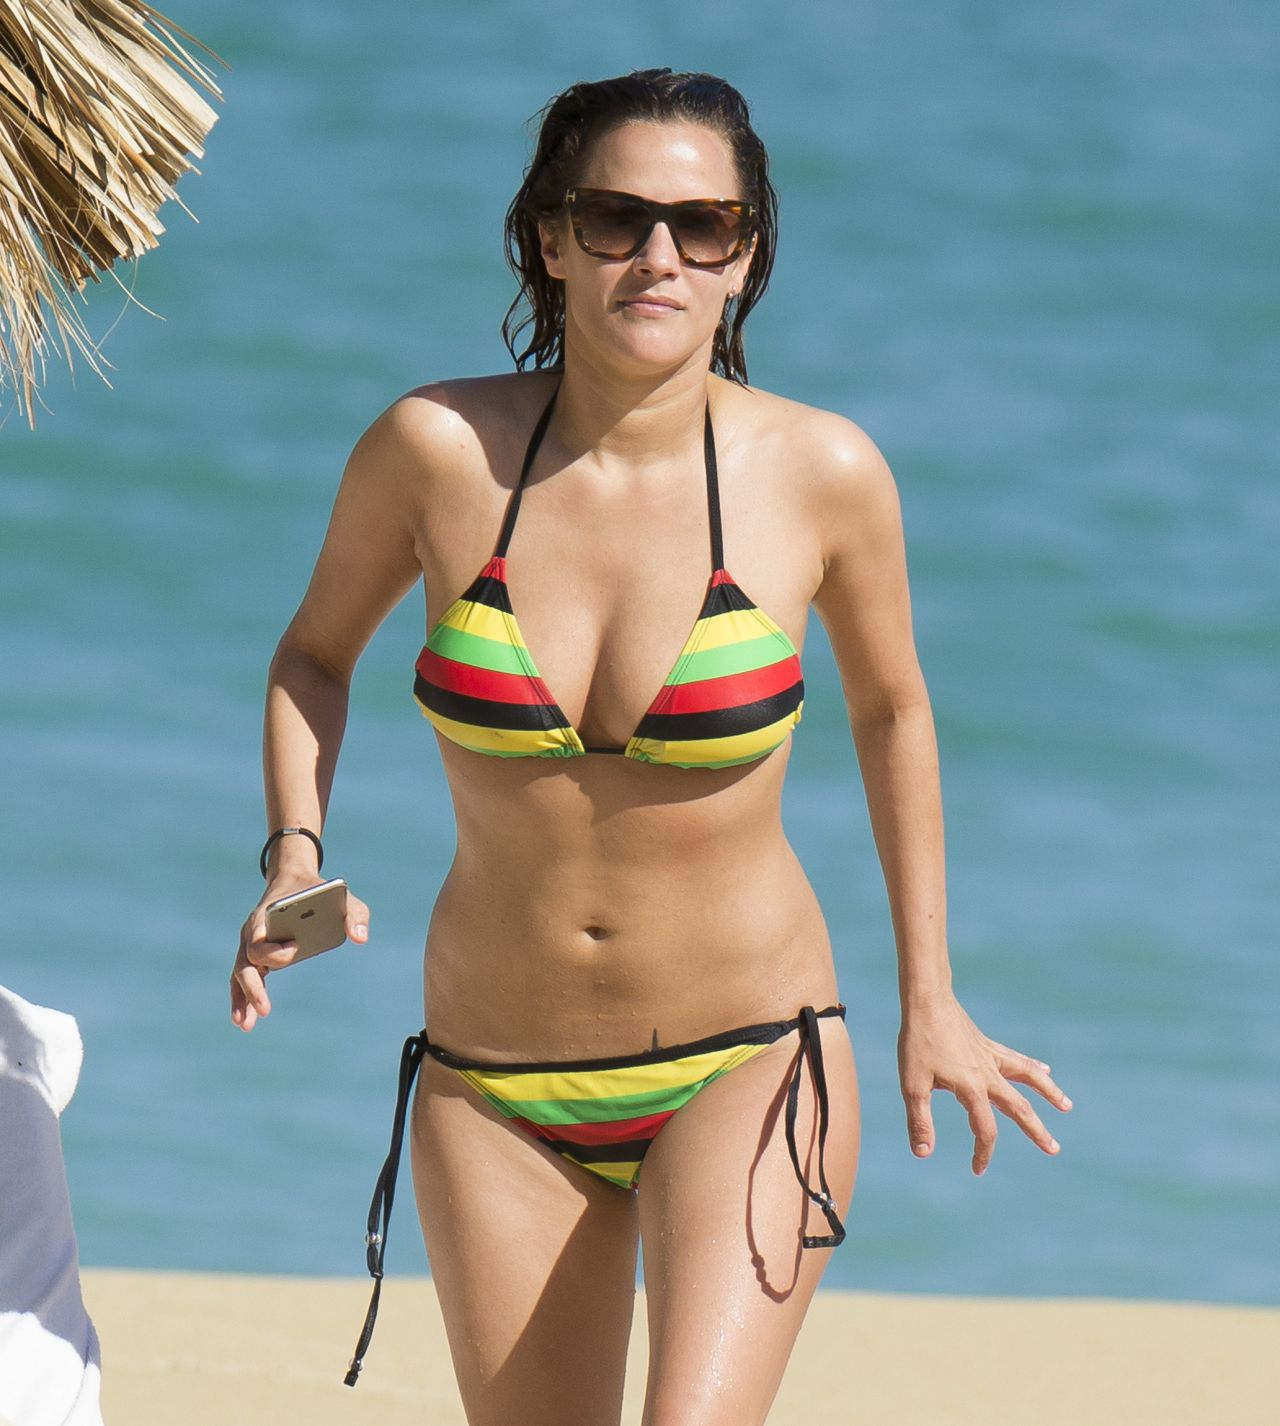 Caroline Flack Bikini Pics - on the Beach in Jamaica - January 2015